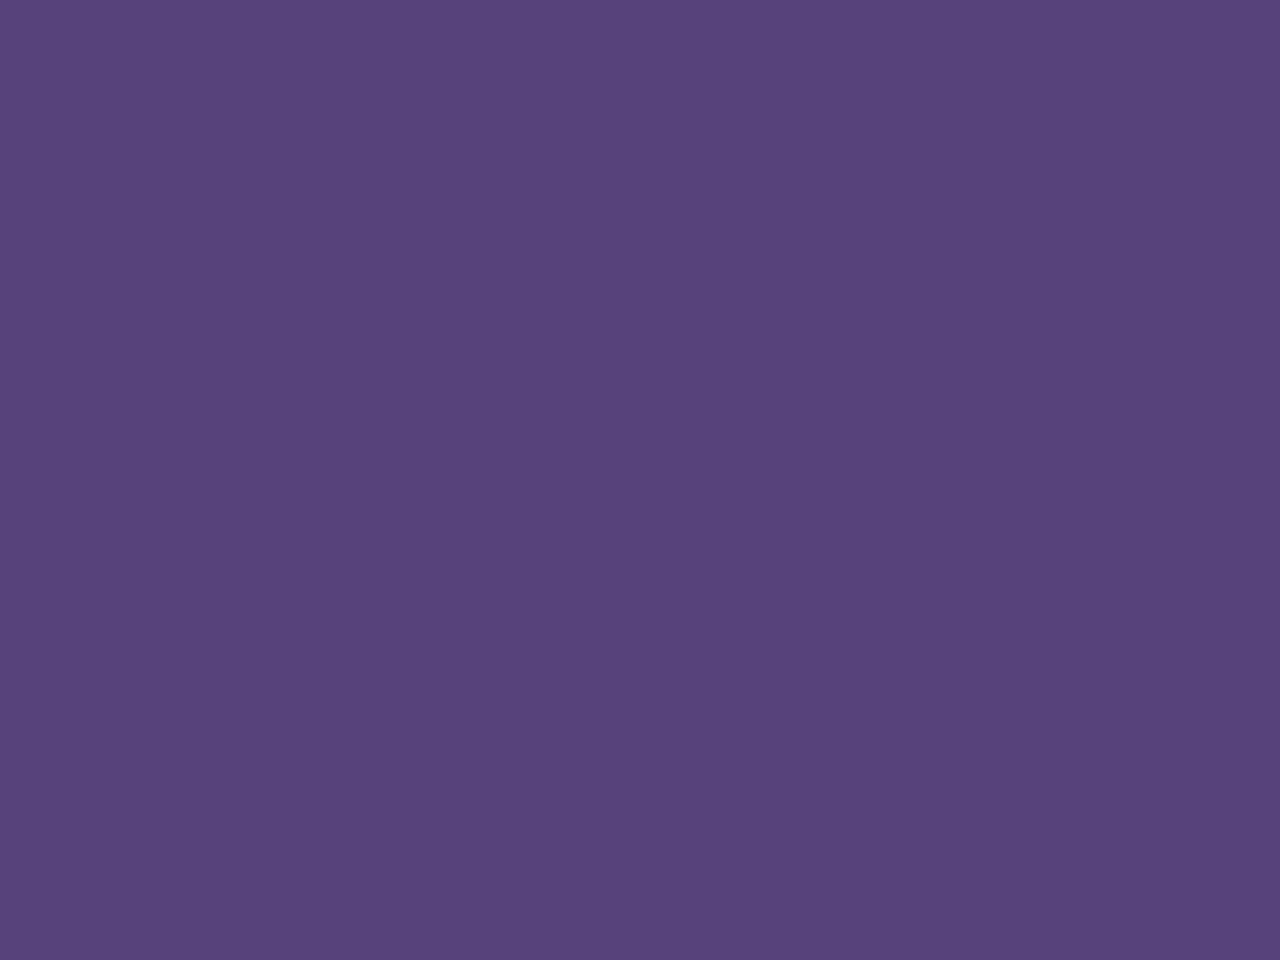 1280x960 Cyber Grape Solid Color Background